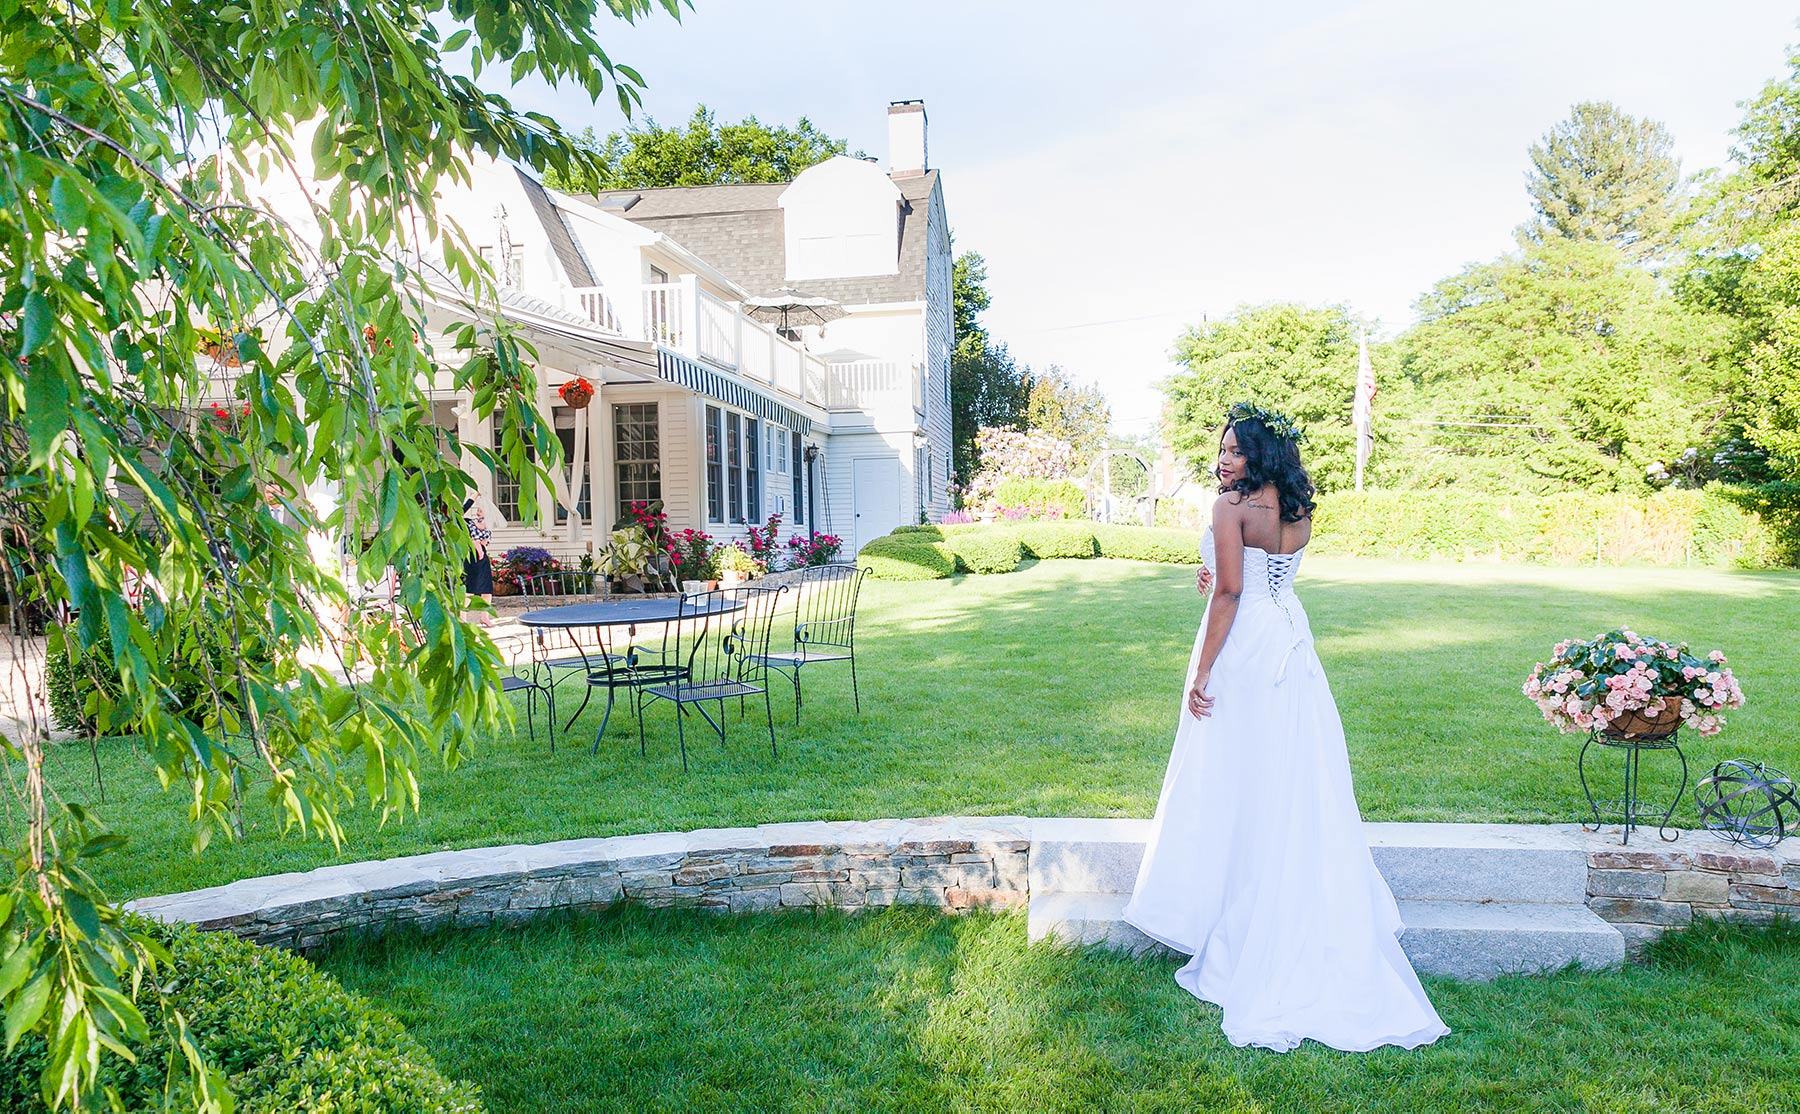 Avida Love Photography is a Berkshire County wedding photography business.